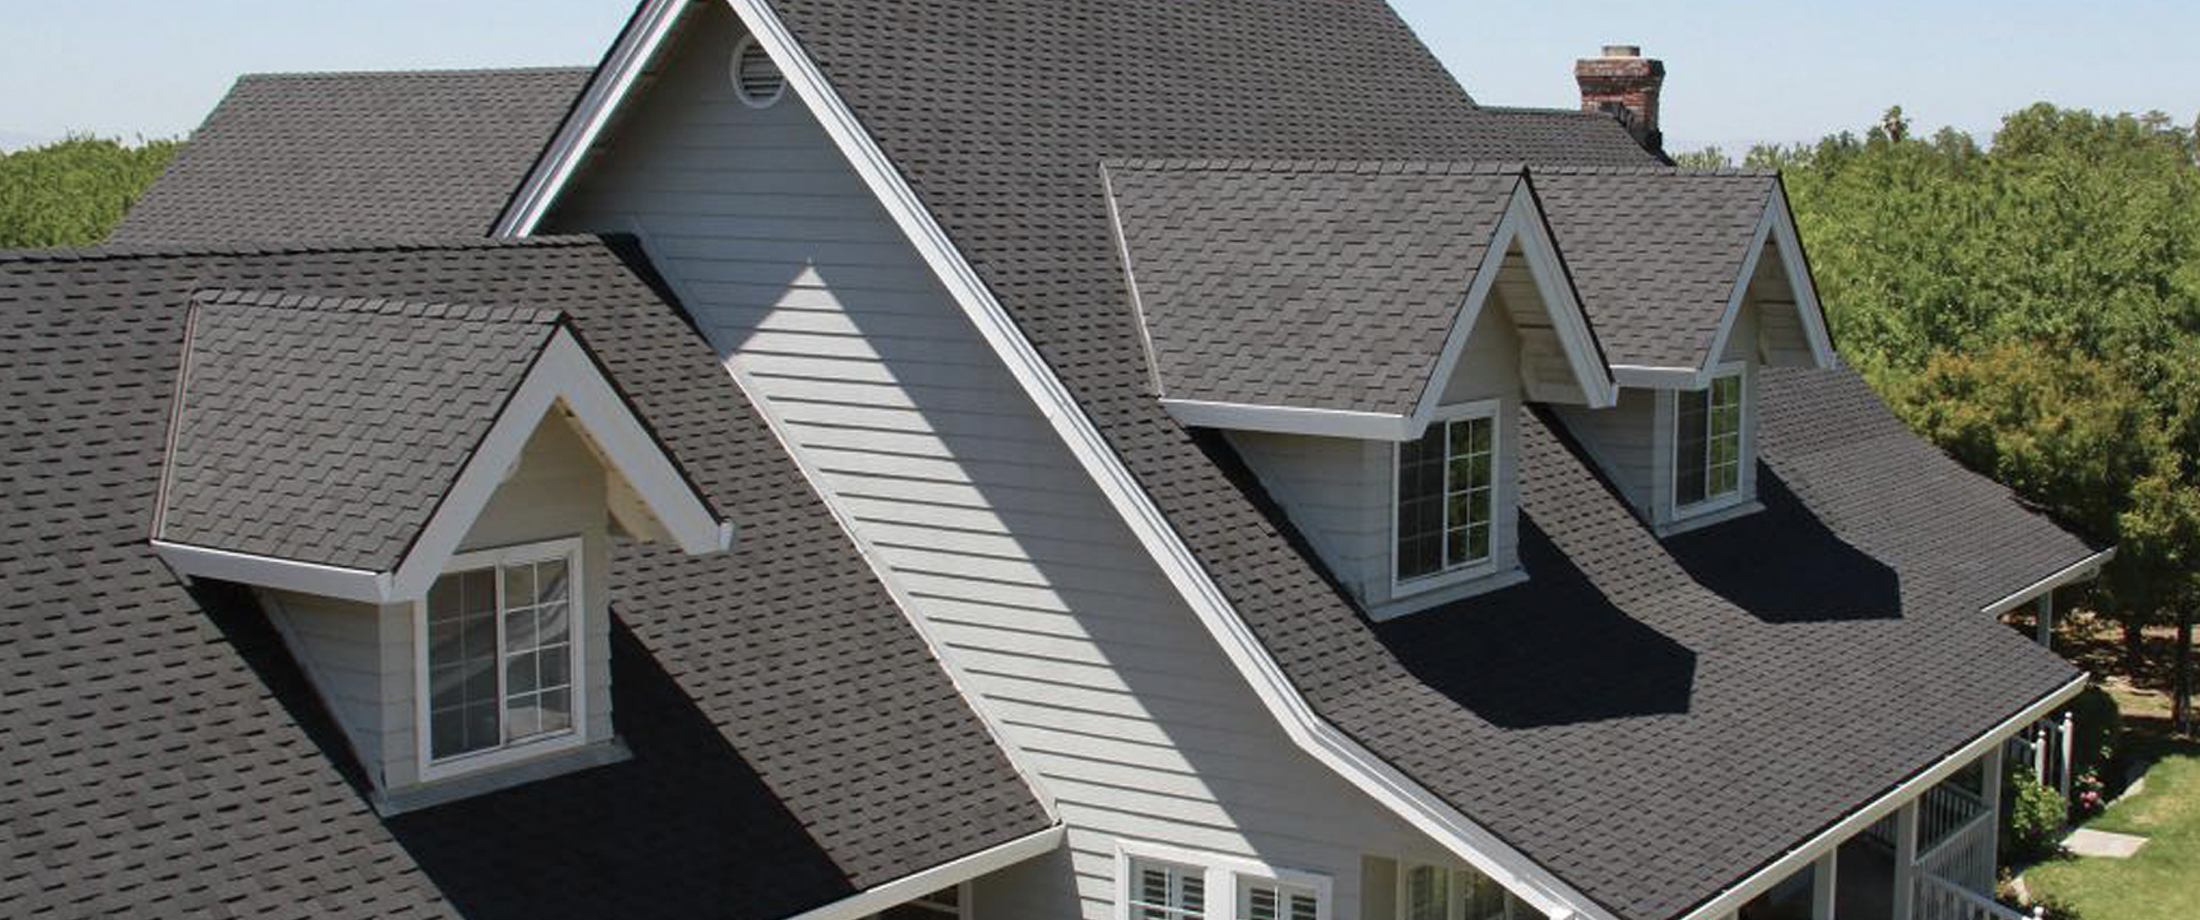 Tips on Finding The Right Residential Roofing Company in Ringgold GA